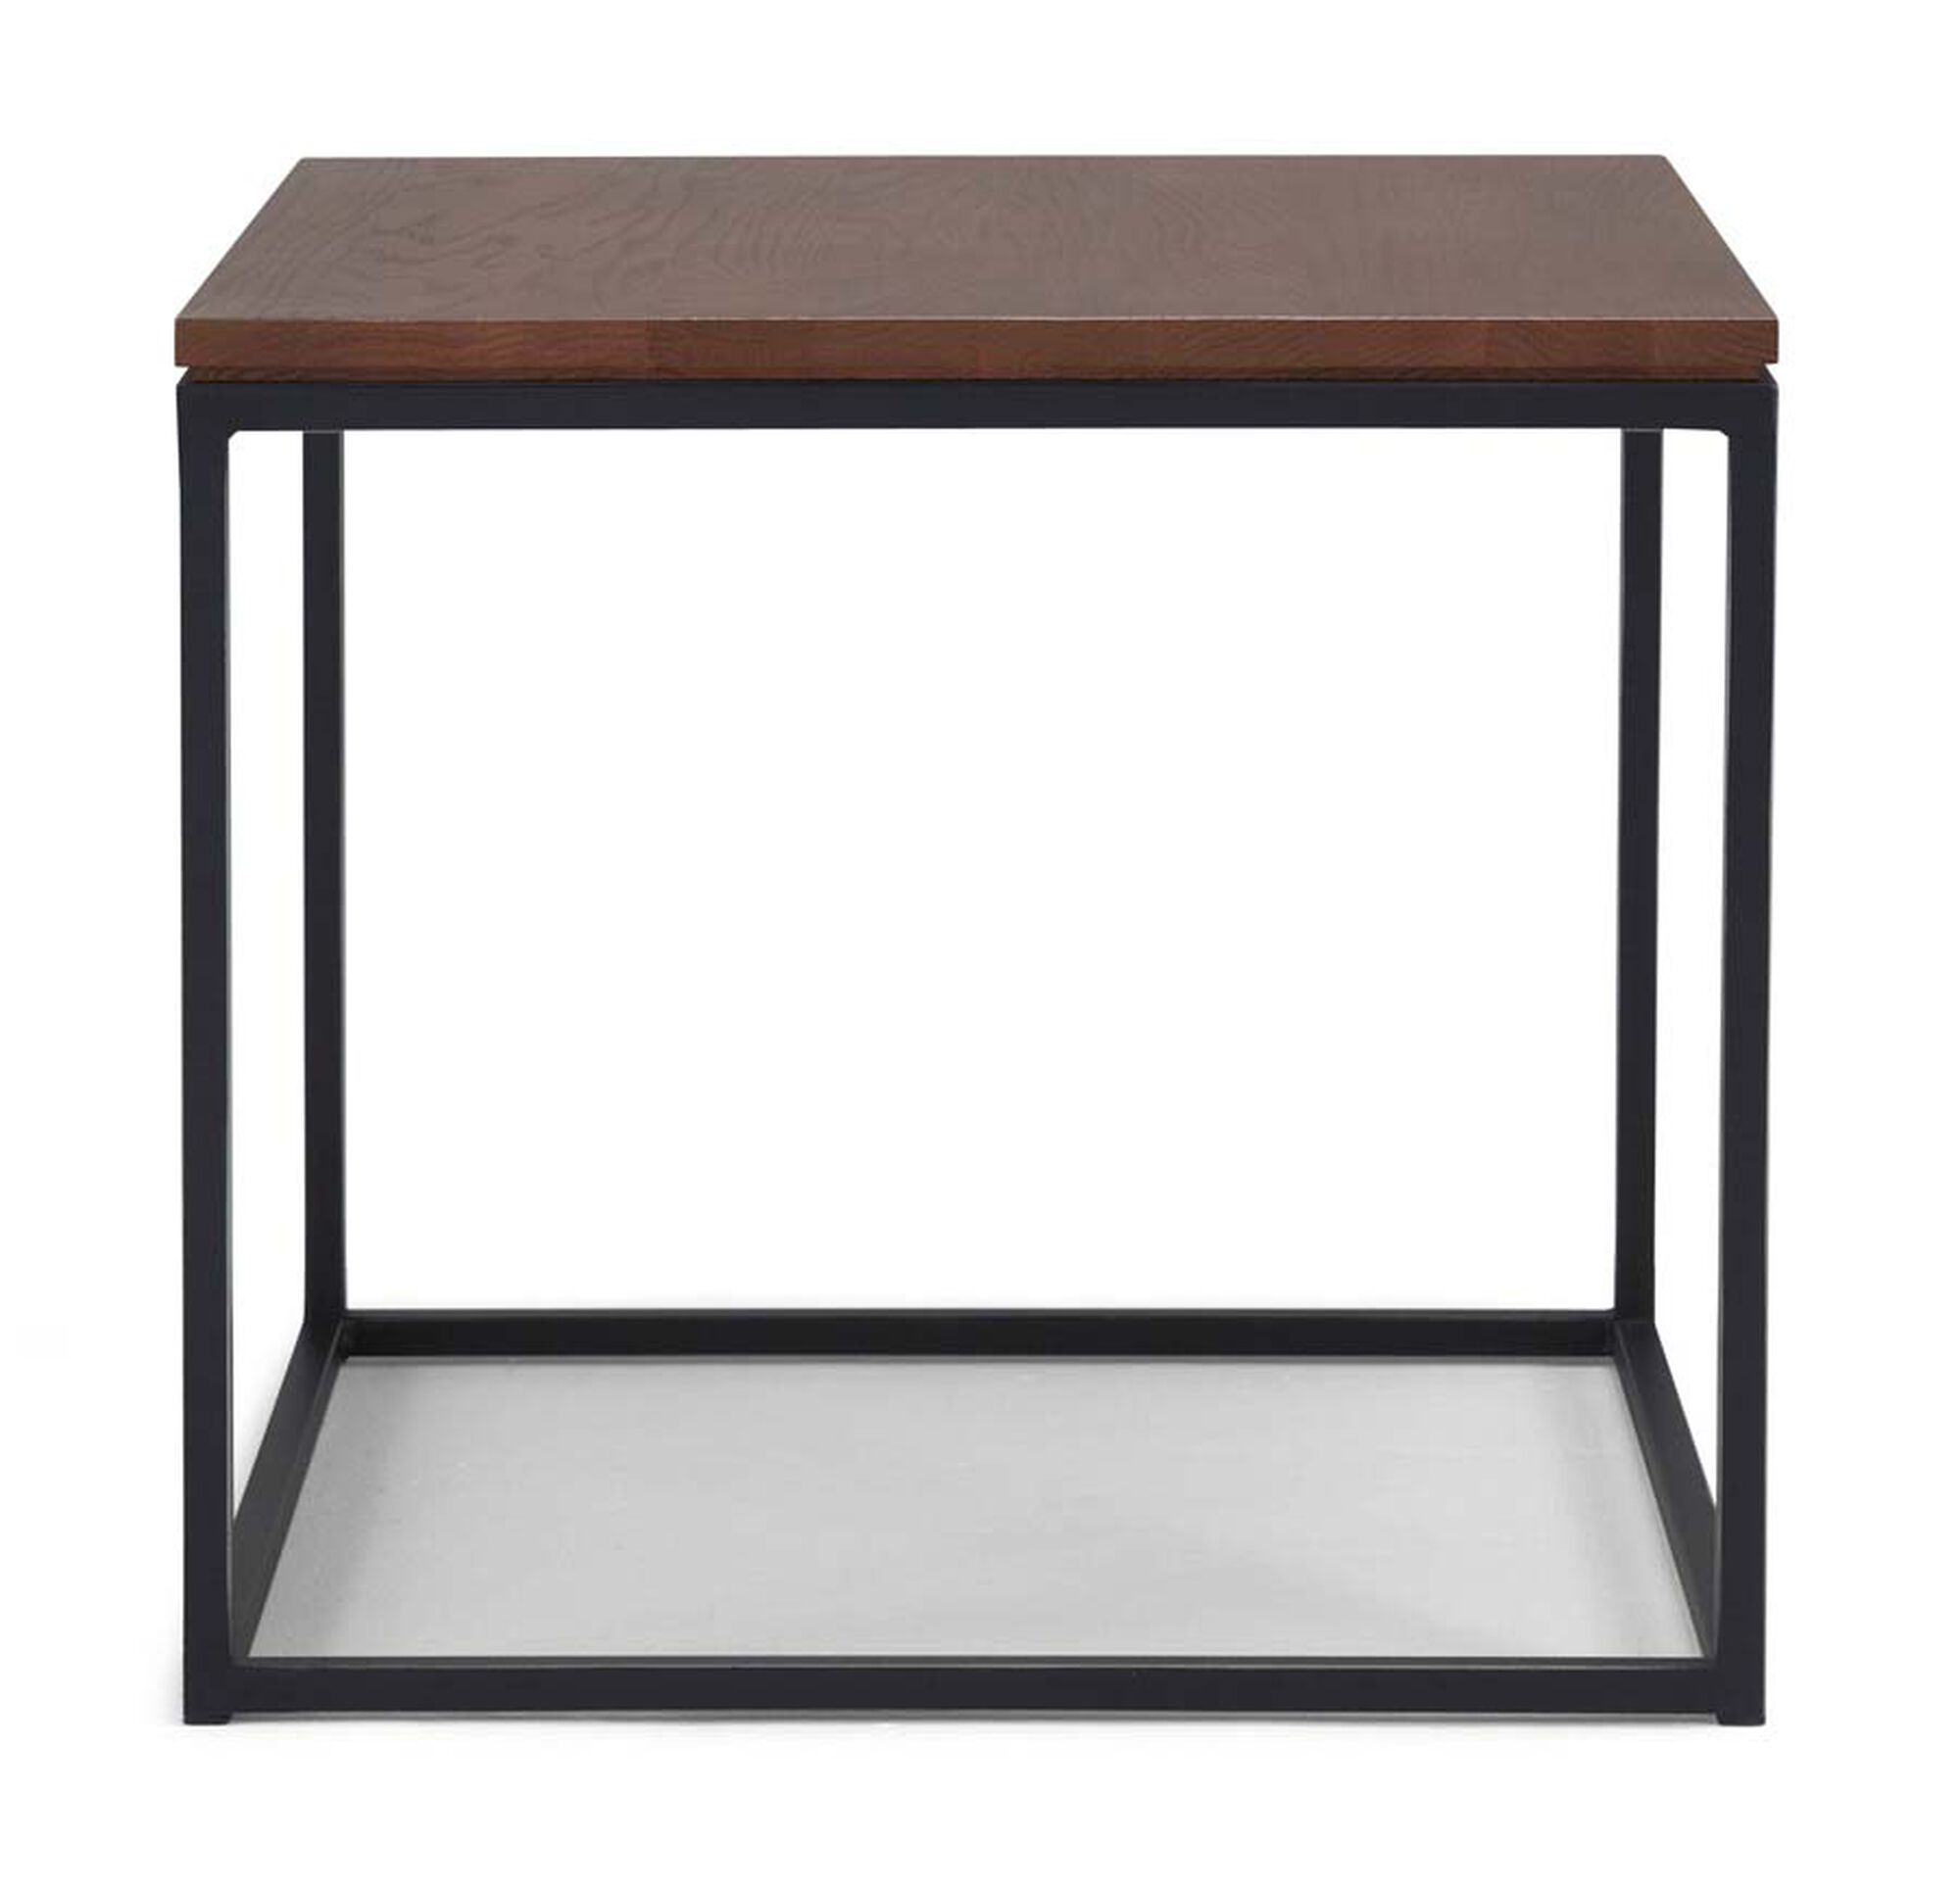 WILL S LOFT SIDE TABLE